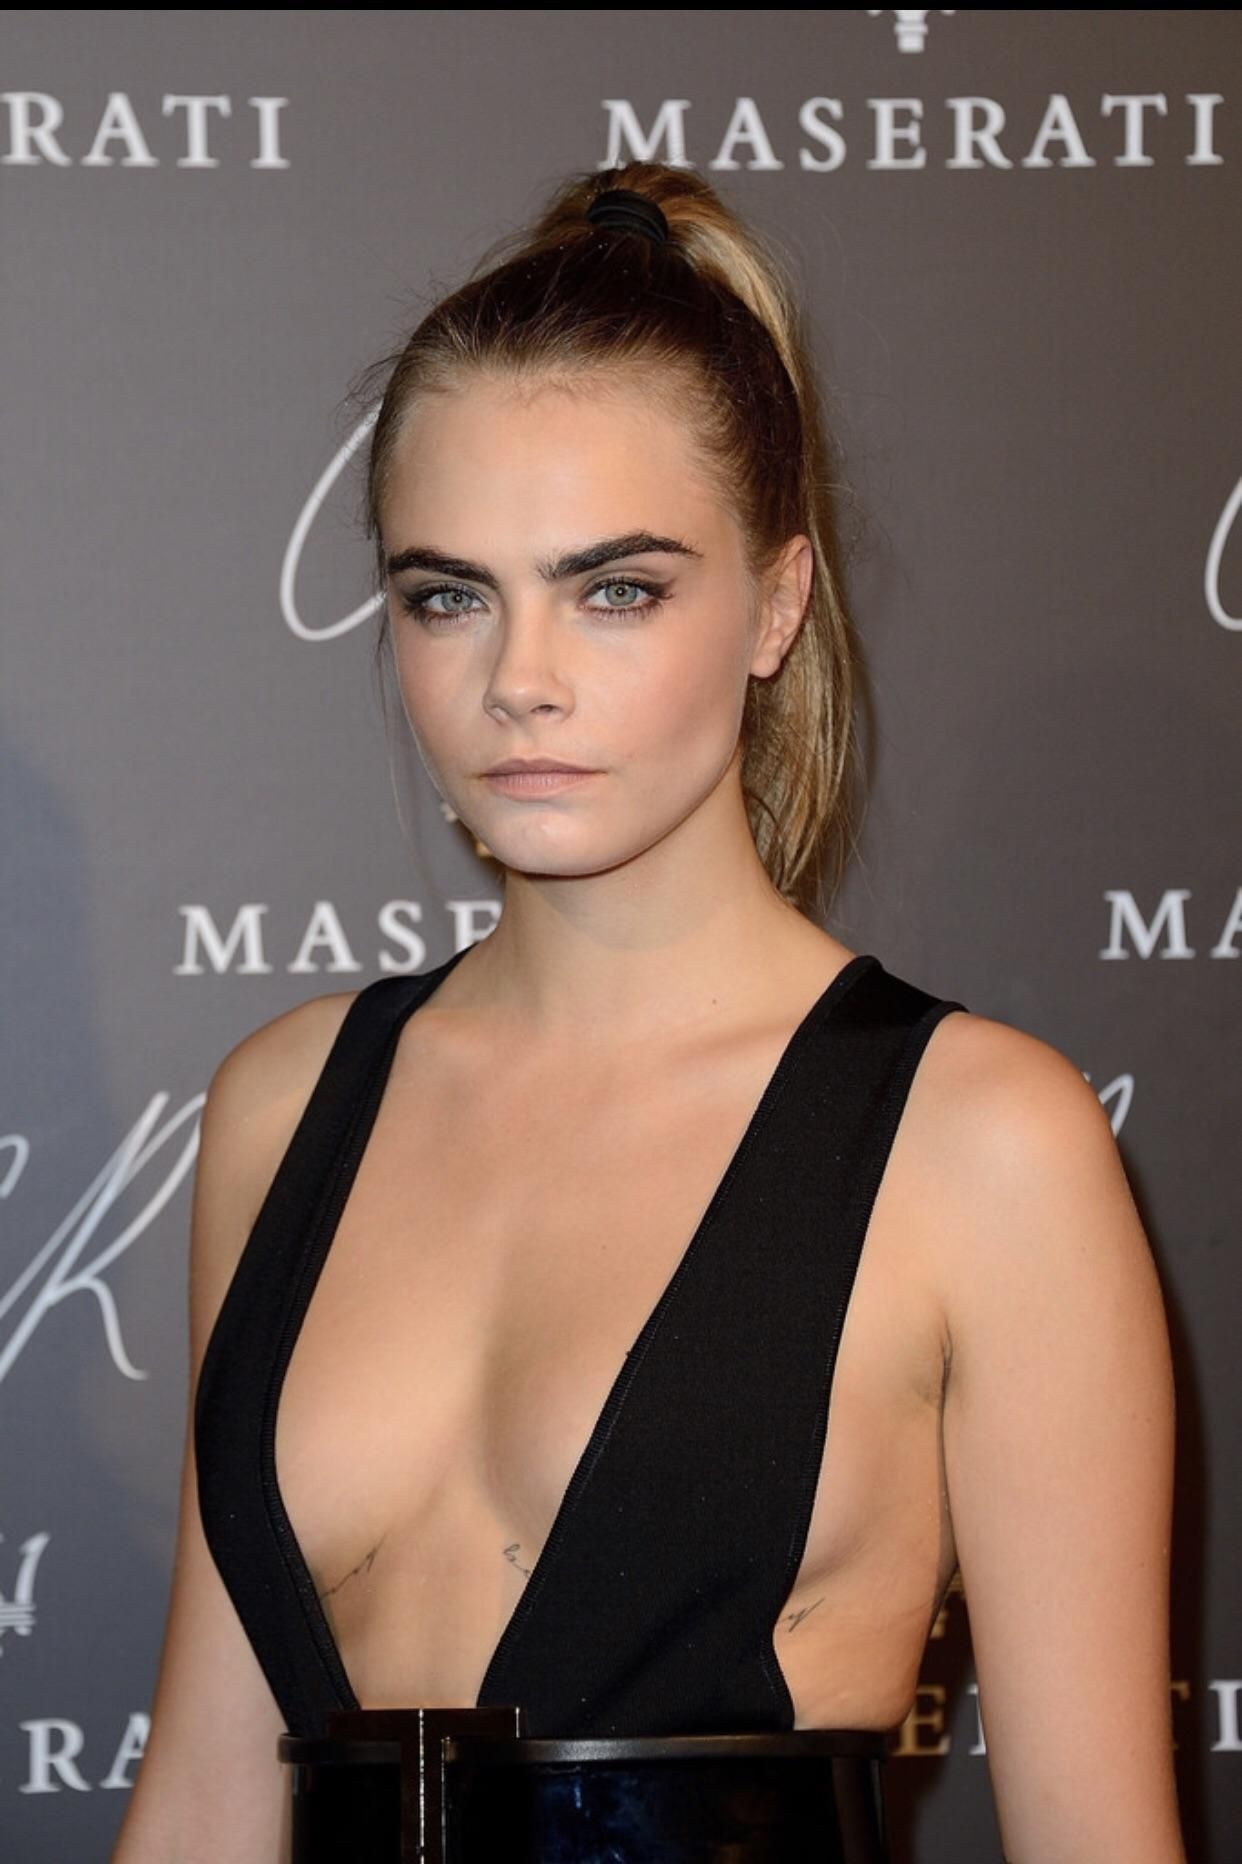 Cleavage Cara Delevigne naked (84 photos), Ass, Bikini, Boobs, see through 2015